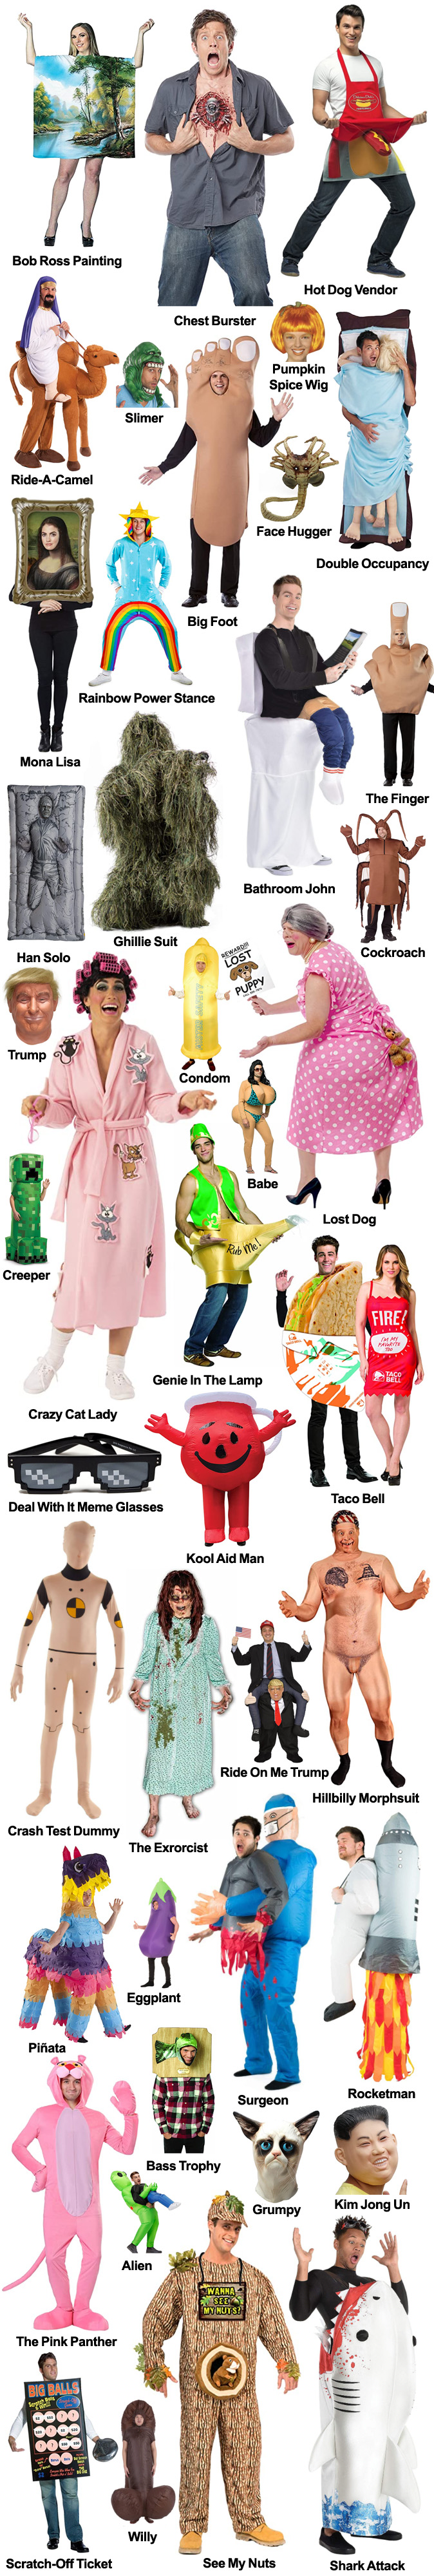 THE BEST COSTUMES FOR HALLOWEEN 2020